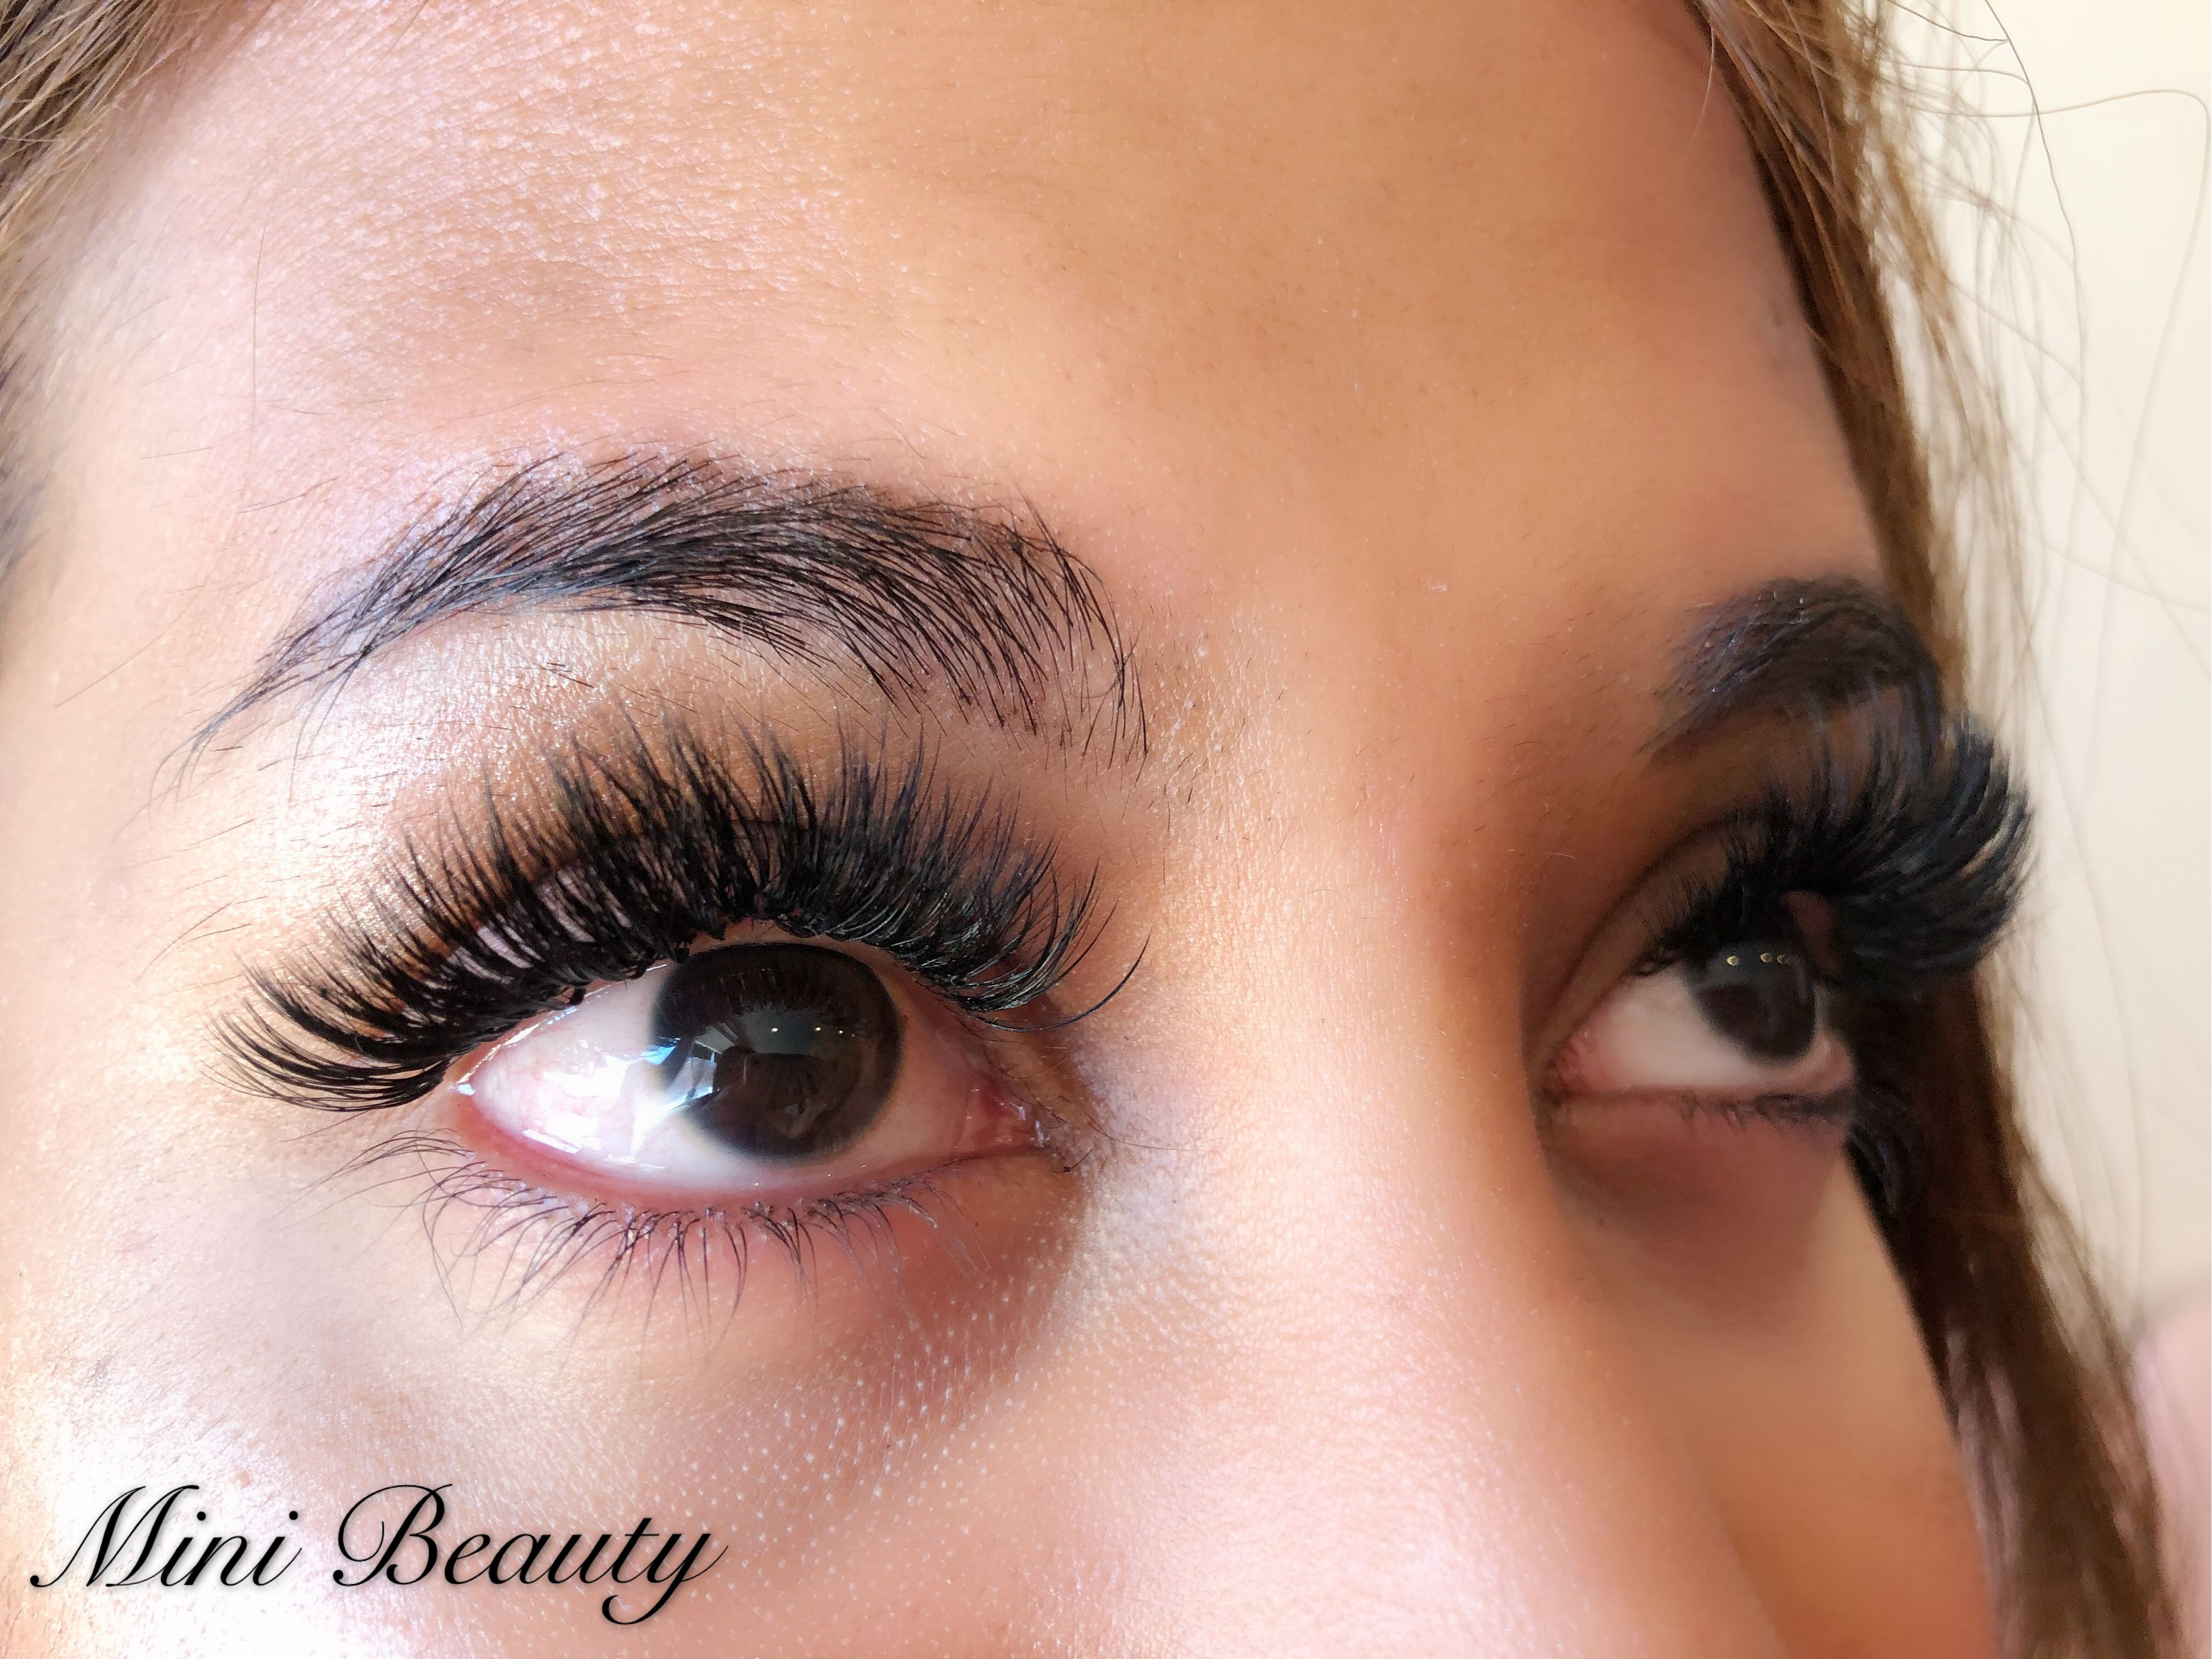 8b0cc3124c5 4D Volume lashes @ Mini Beauty Eyelash Volume Lashes, Eyelash Extensions,  Eyelashes, Human